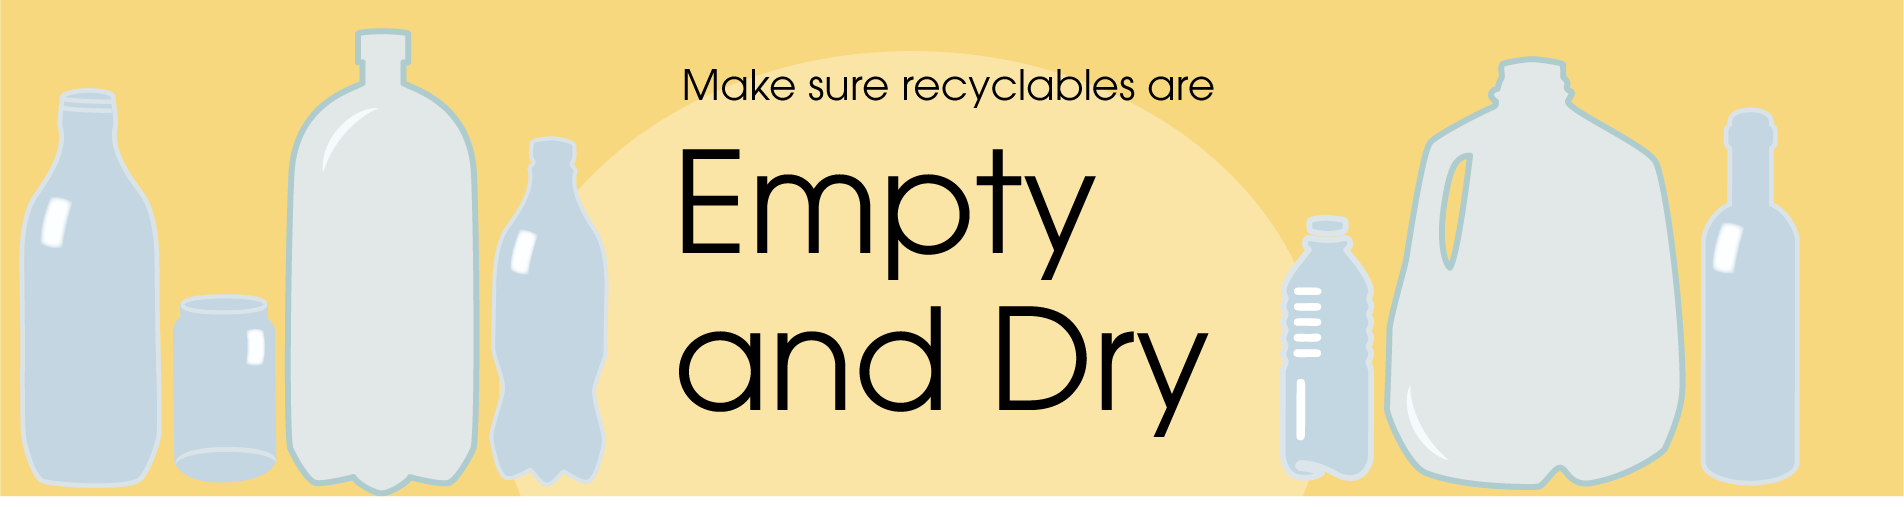 Make sure recyclables are empty and dry